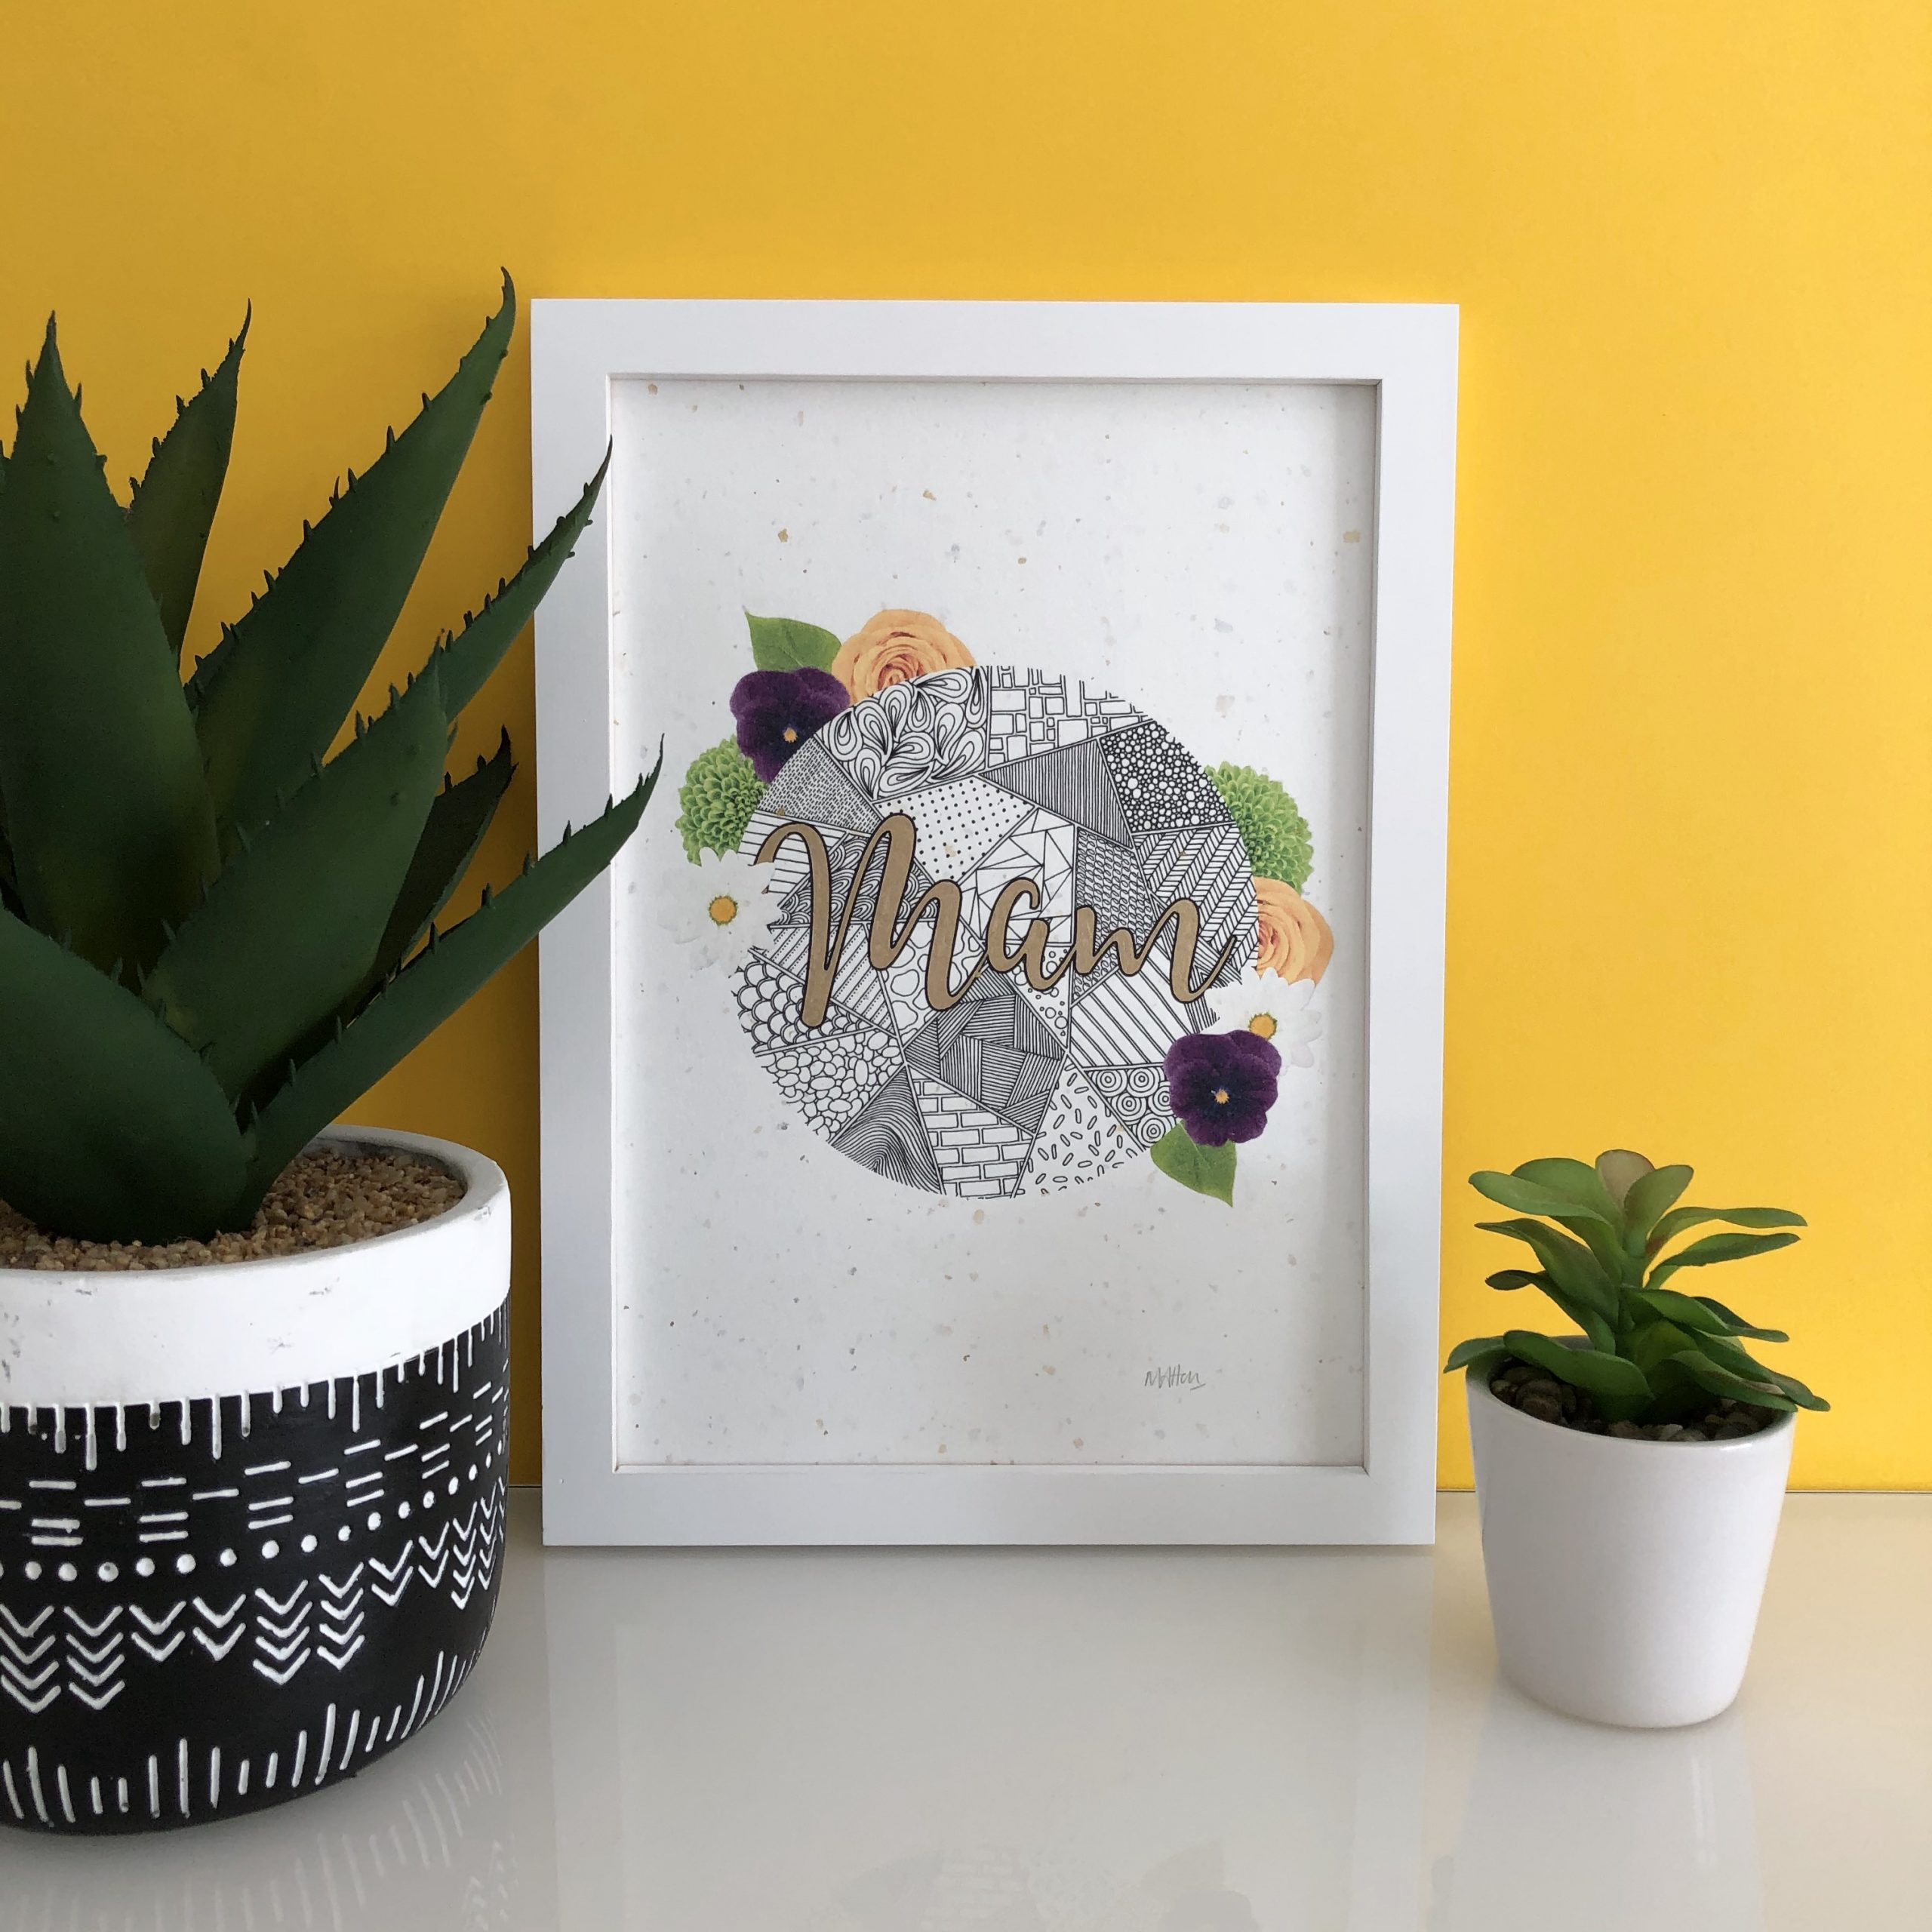 This gorgeous A4 art print features zentangle inspired patterns decorated with purple pansies, yellow roses and daisies, hand-finished with metallic gold detailing to the letters. The design is printed onto exquisite, handmade paper featuring flecks of silver and gold foil throughout.